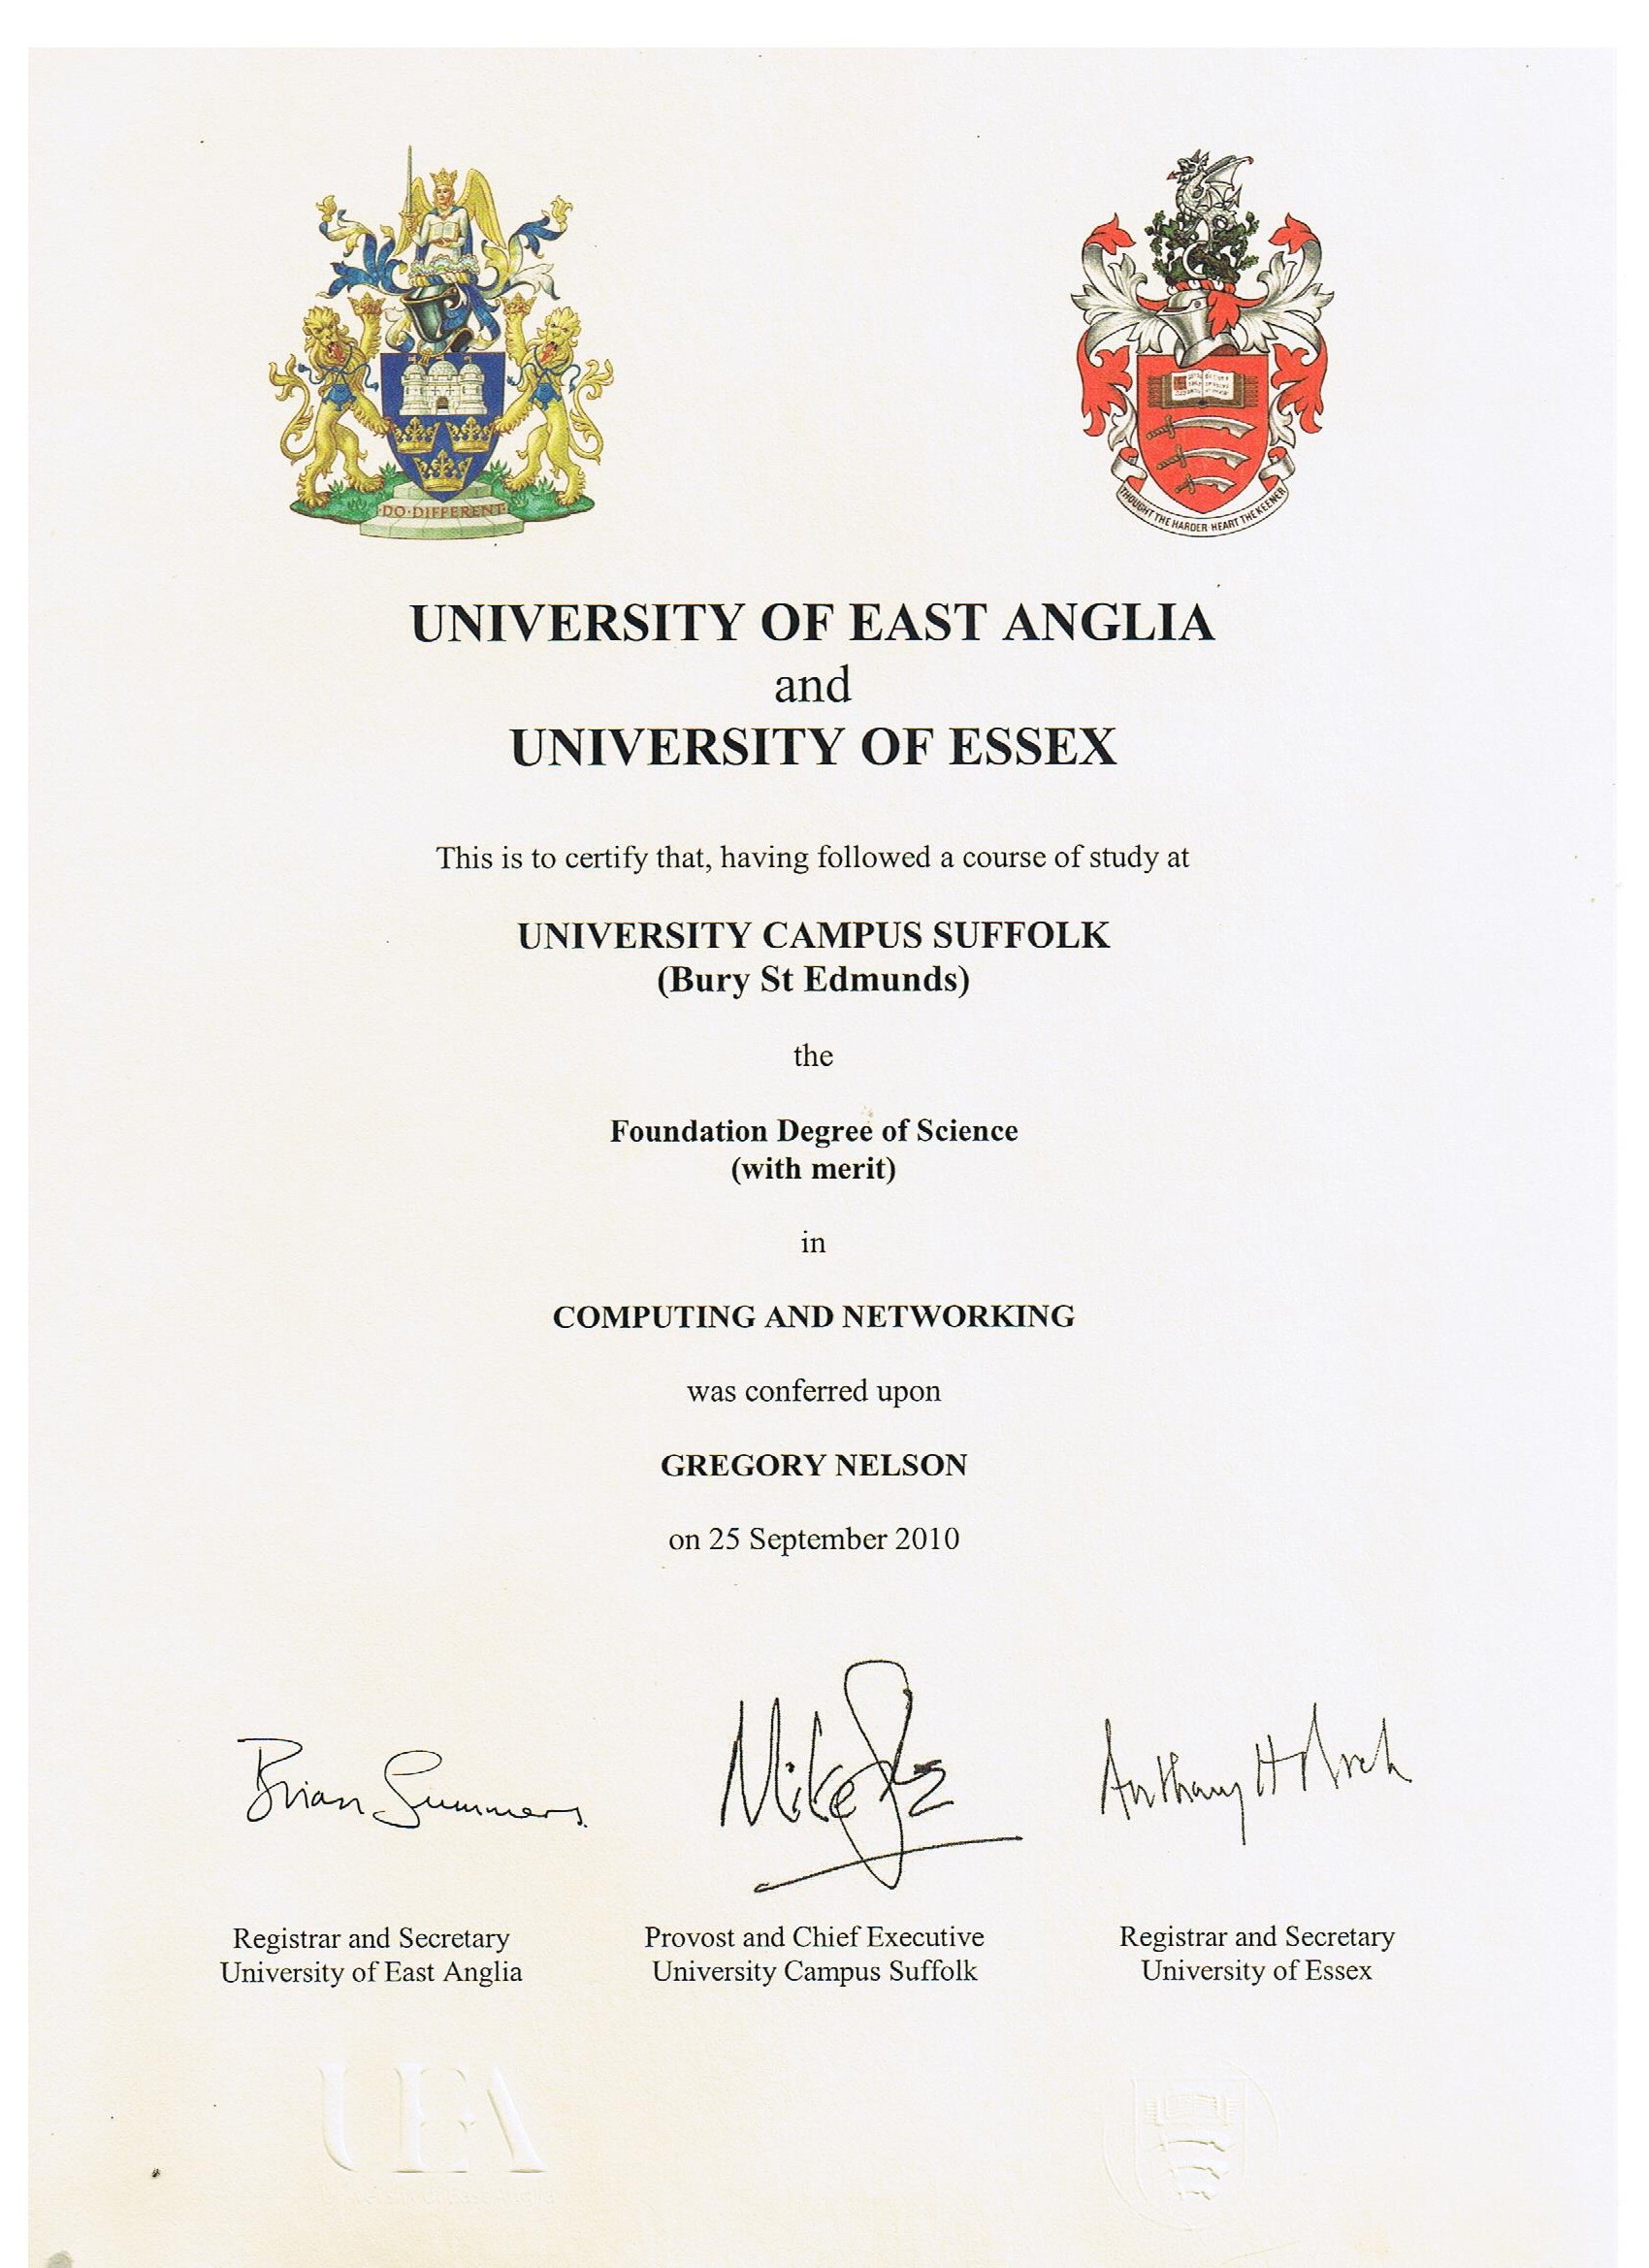 Gregs fondation degree